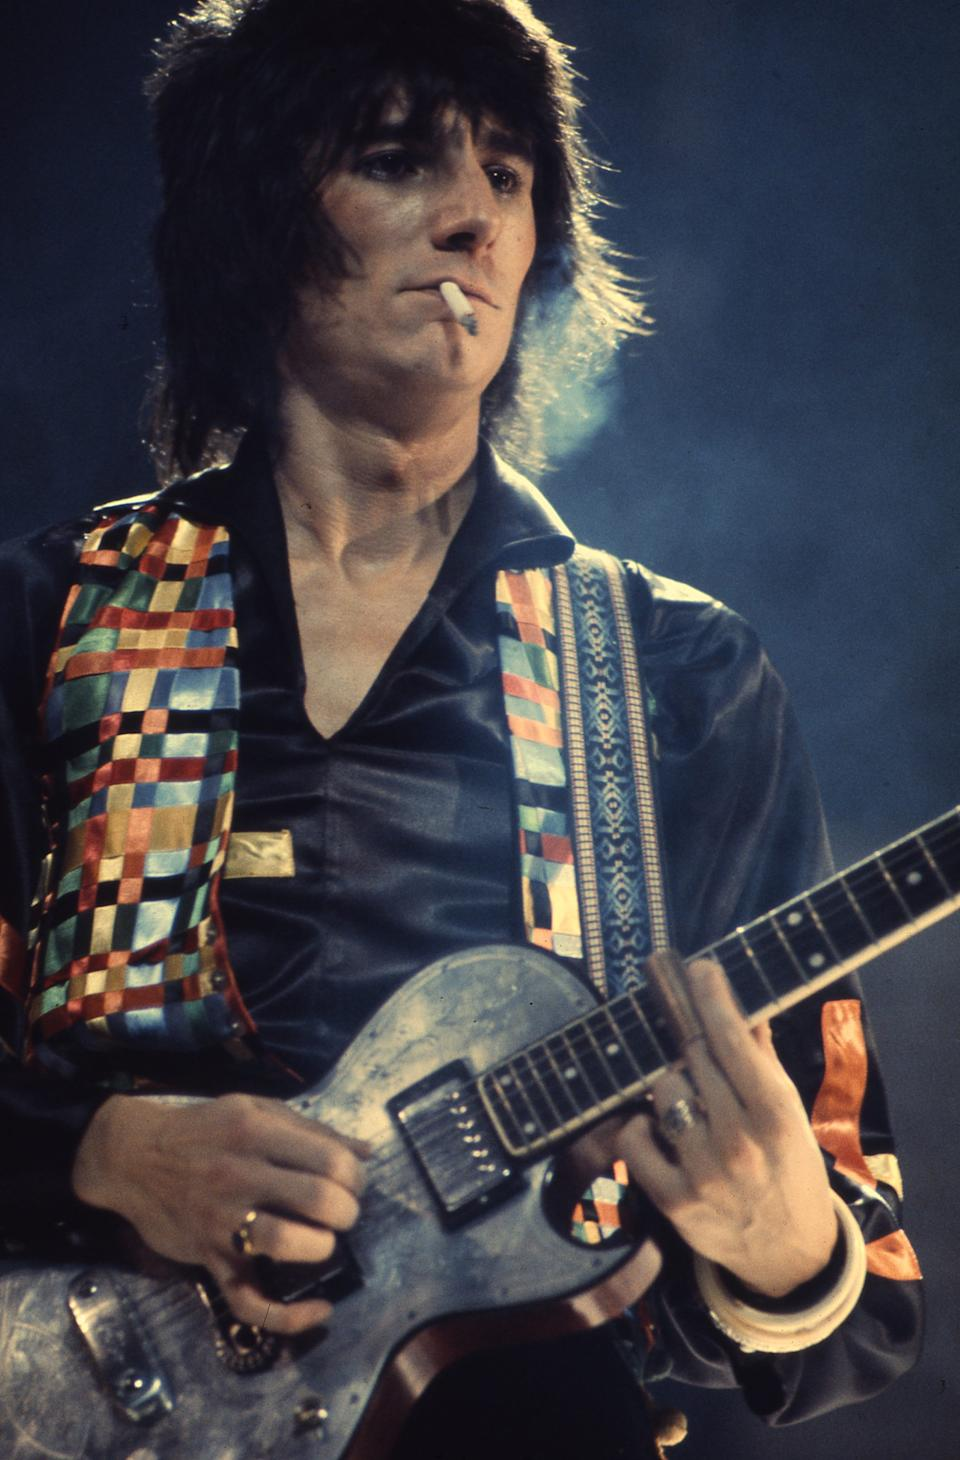 British guitarist Ronnie Wood of the Faces performing on stage in 1972. (Photo by Michael Putland/Getty Images)